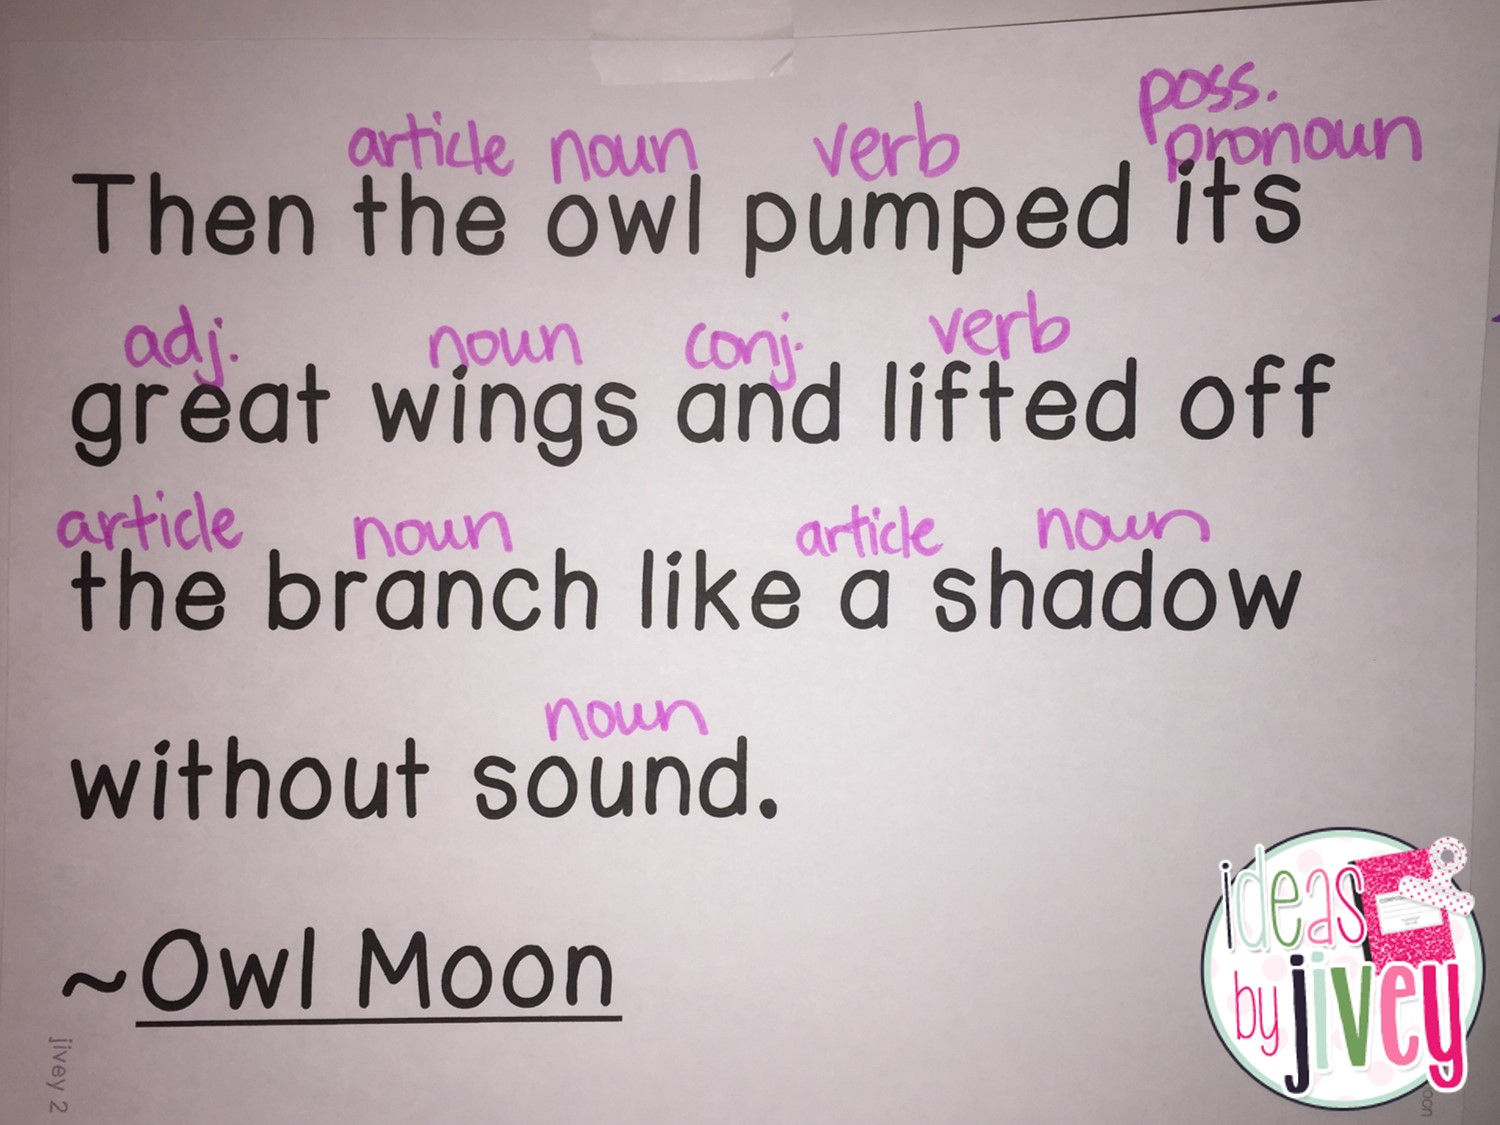 Mentor Sentence Planning Present Using Owl Moon